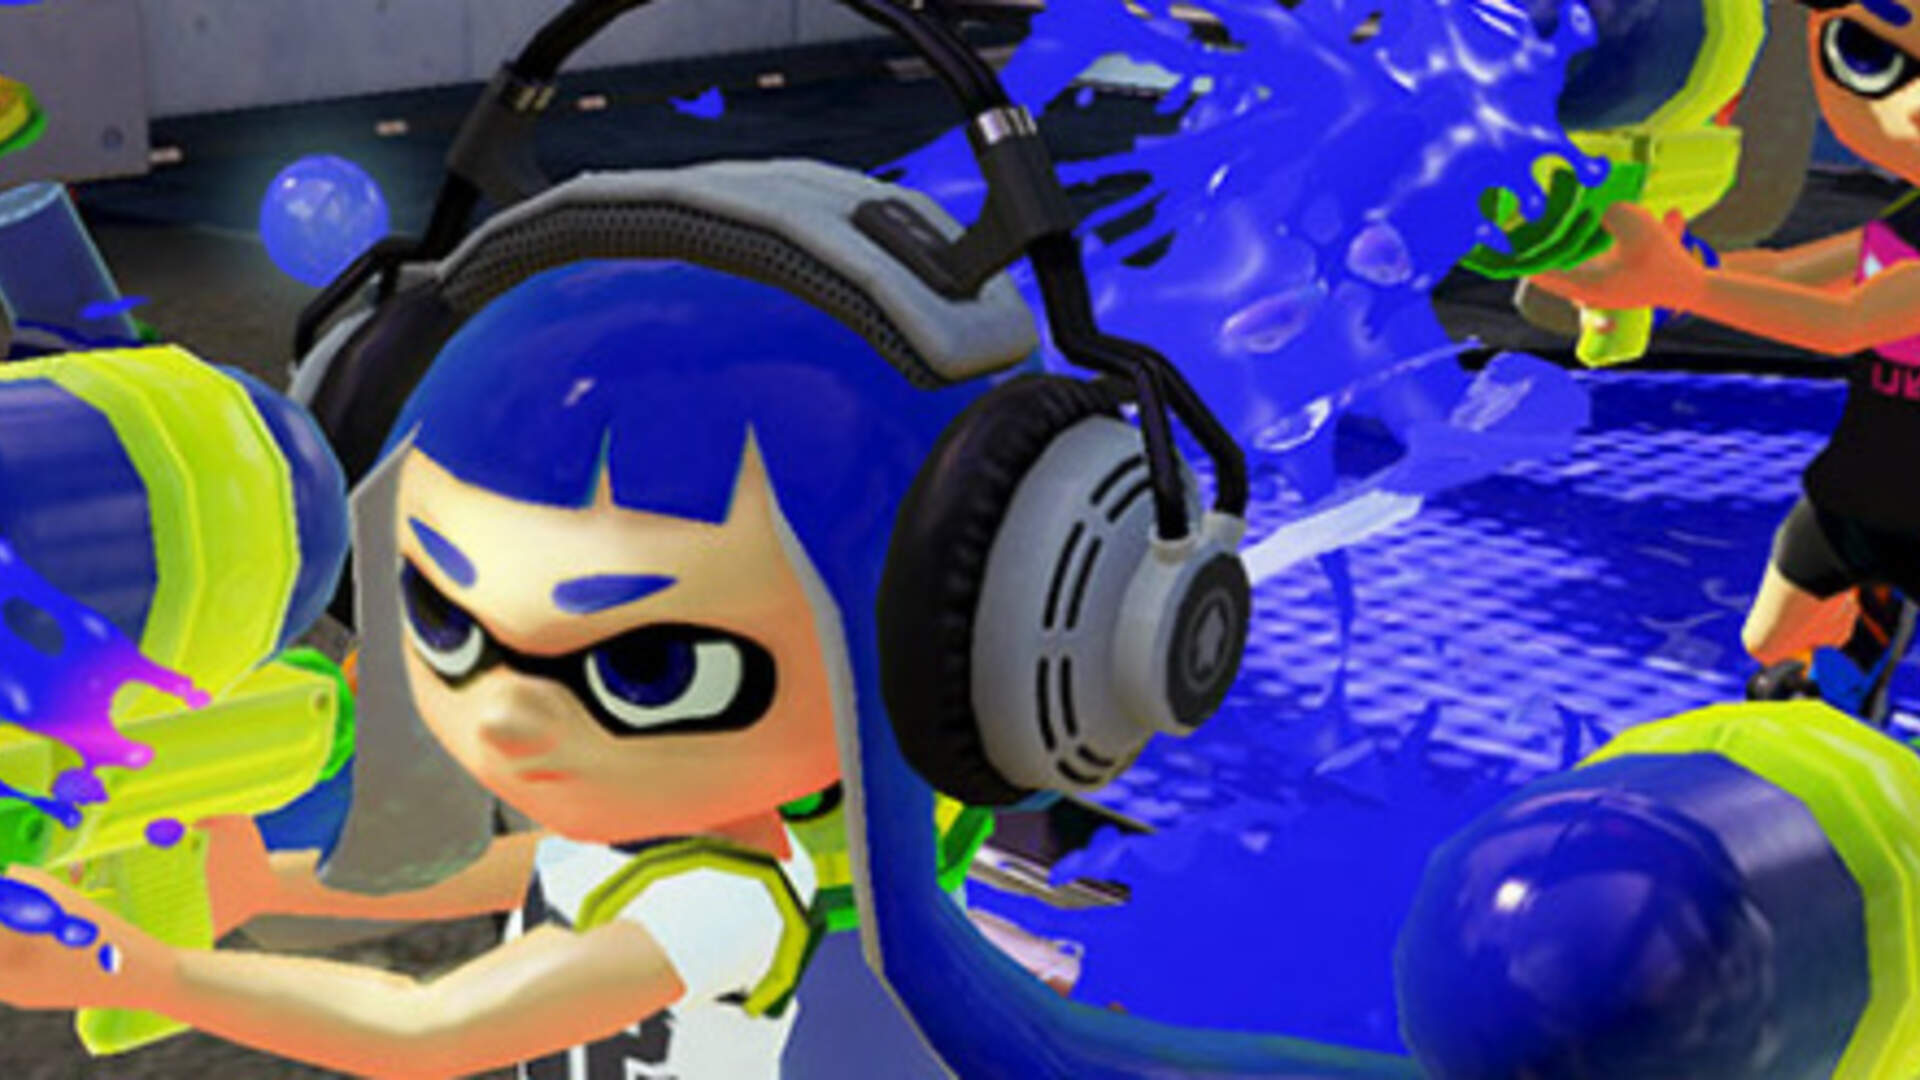 Splatoon was Tested with Yoshi as a Main Character